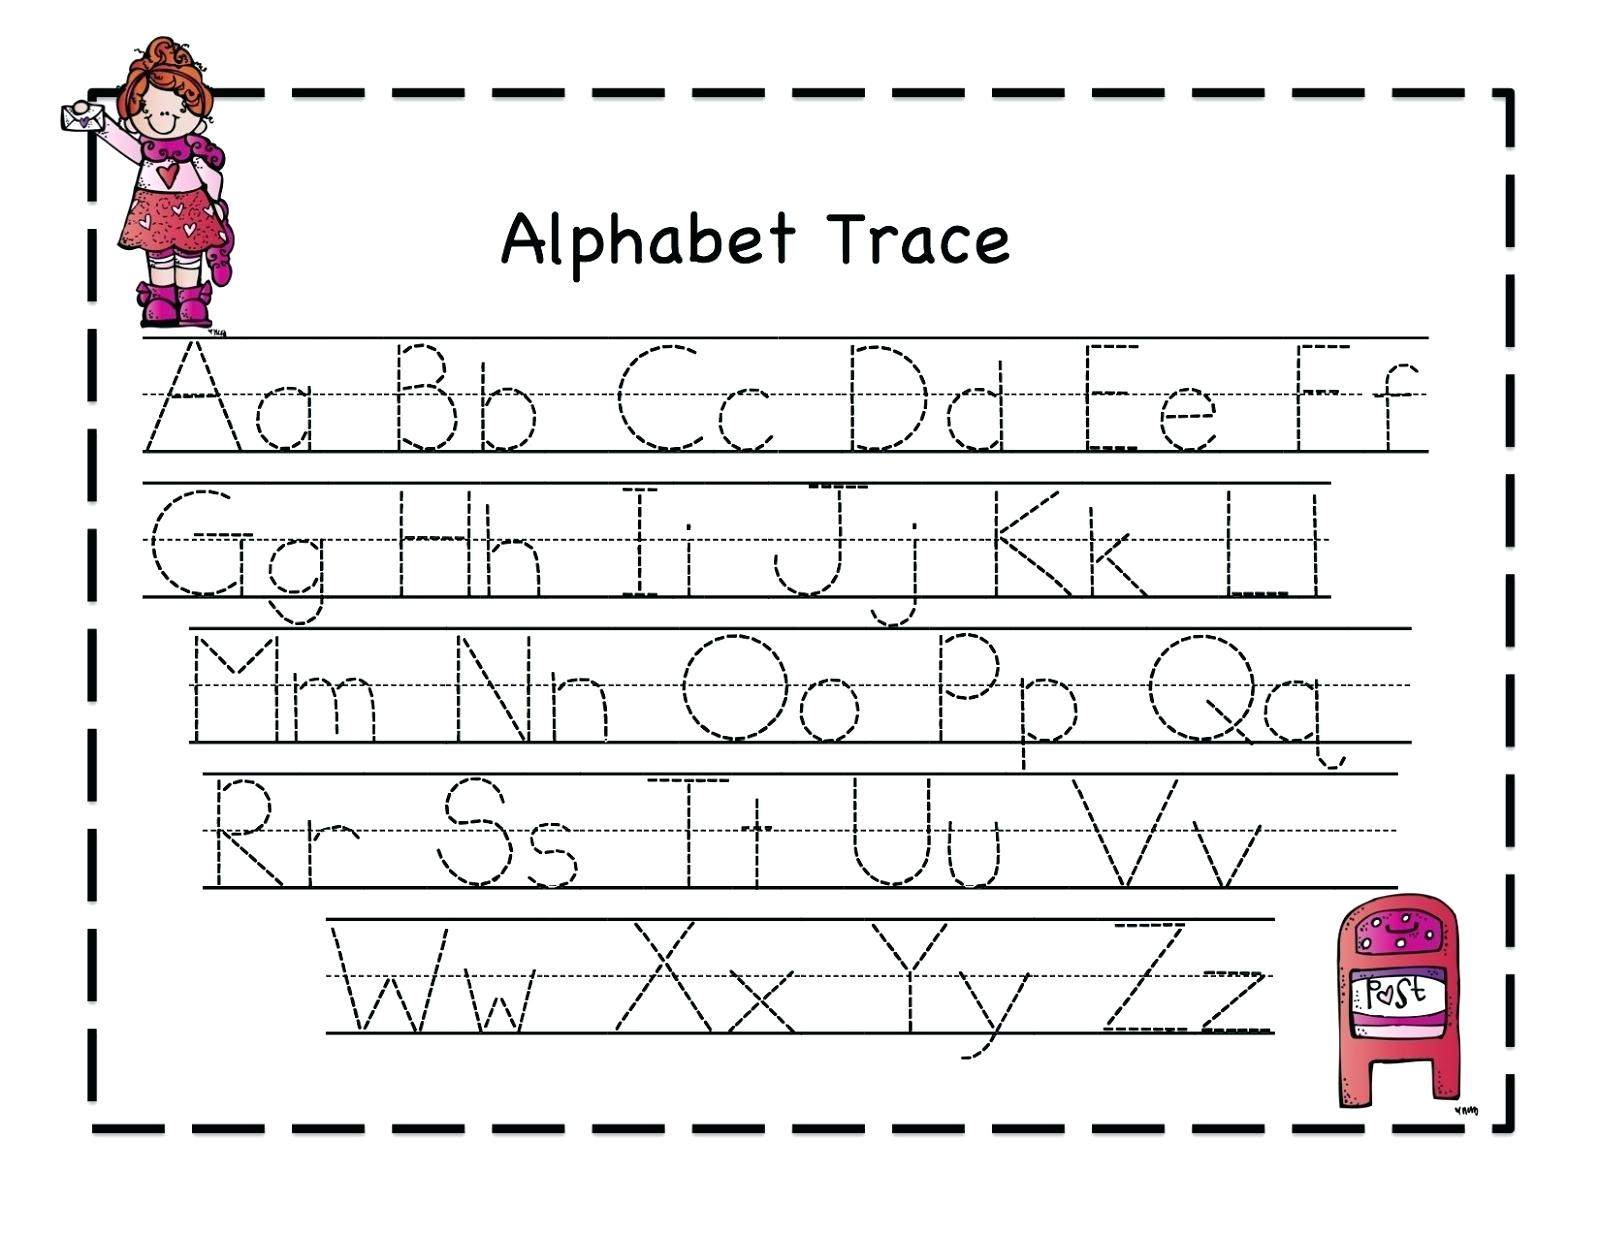 Tracing The Alphabet Printable Abc Tracing Sheets For Toddlers - Free Printable Traceable Letters